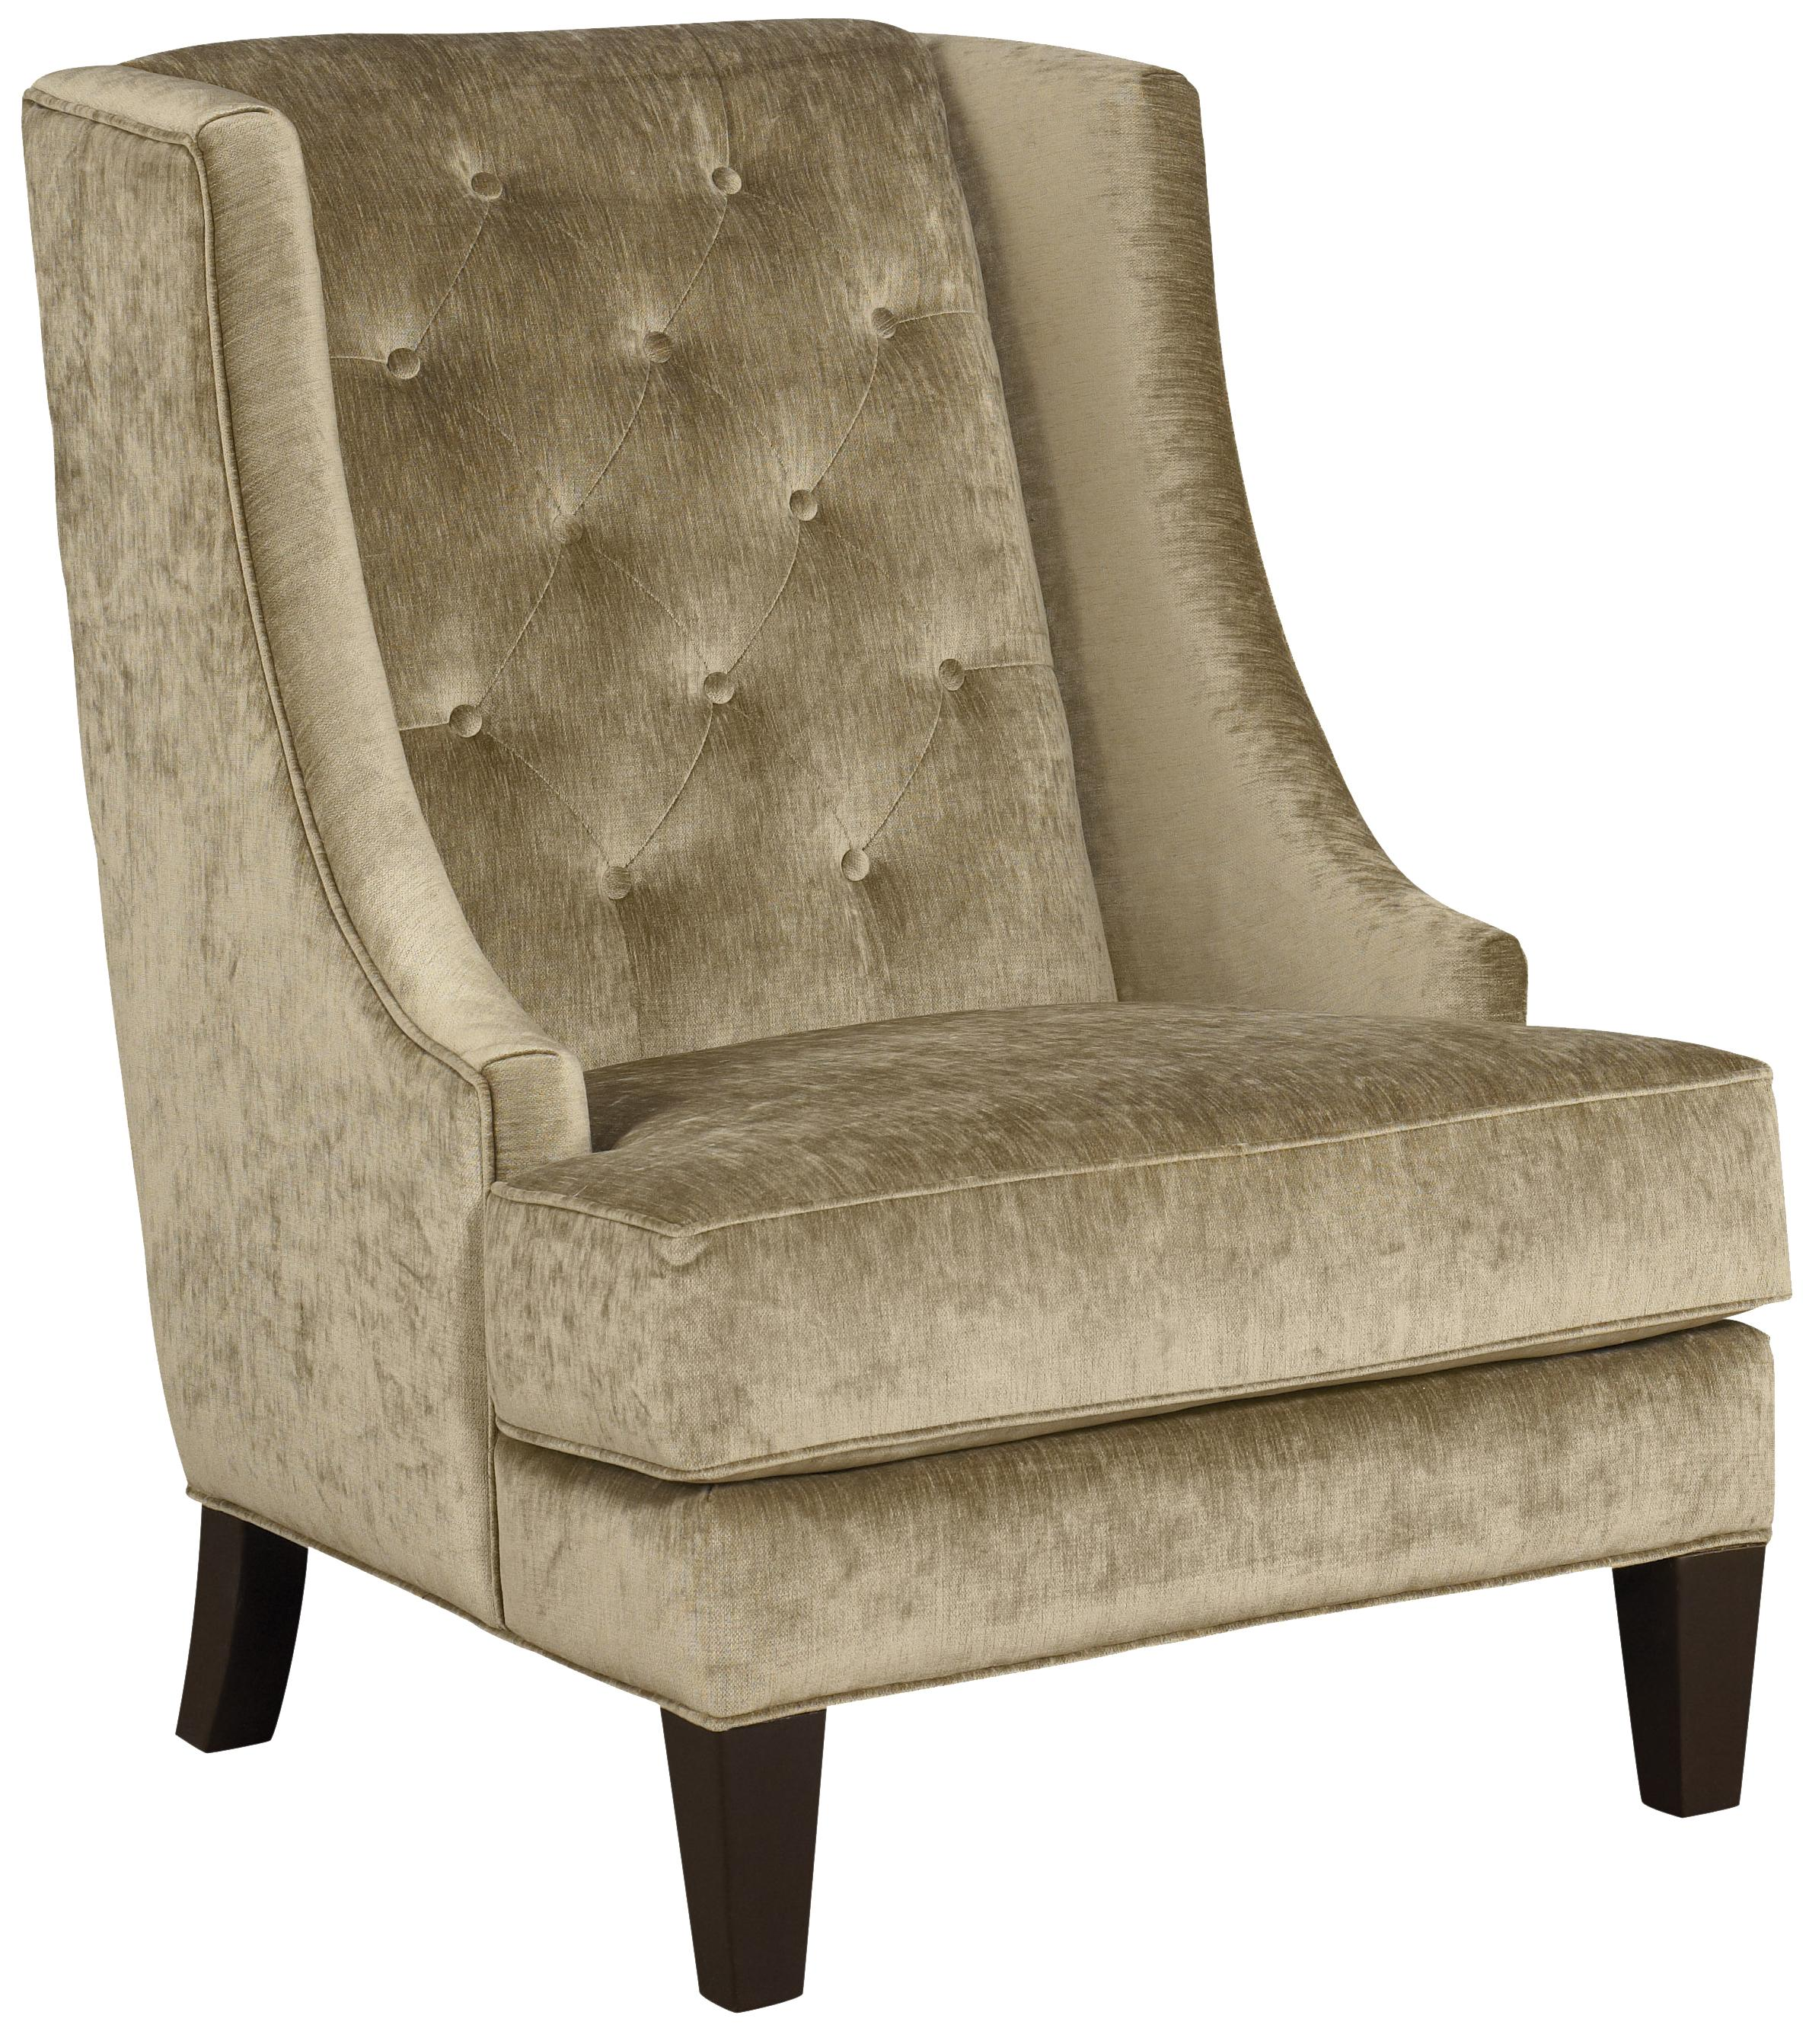 Accentuates Accent Chair at Williams & Kay